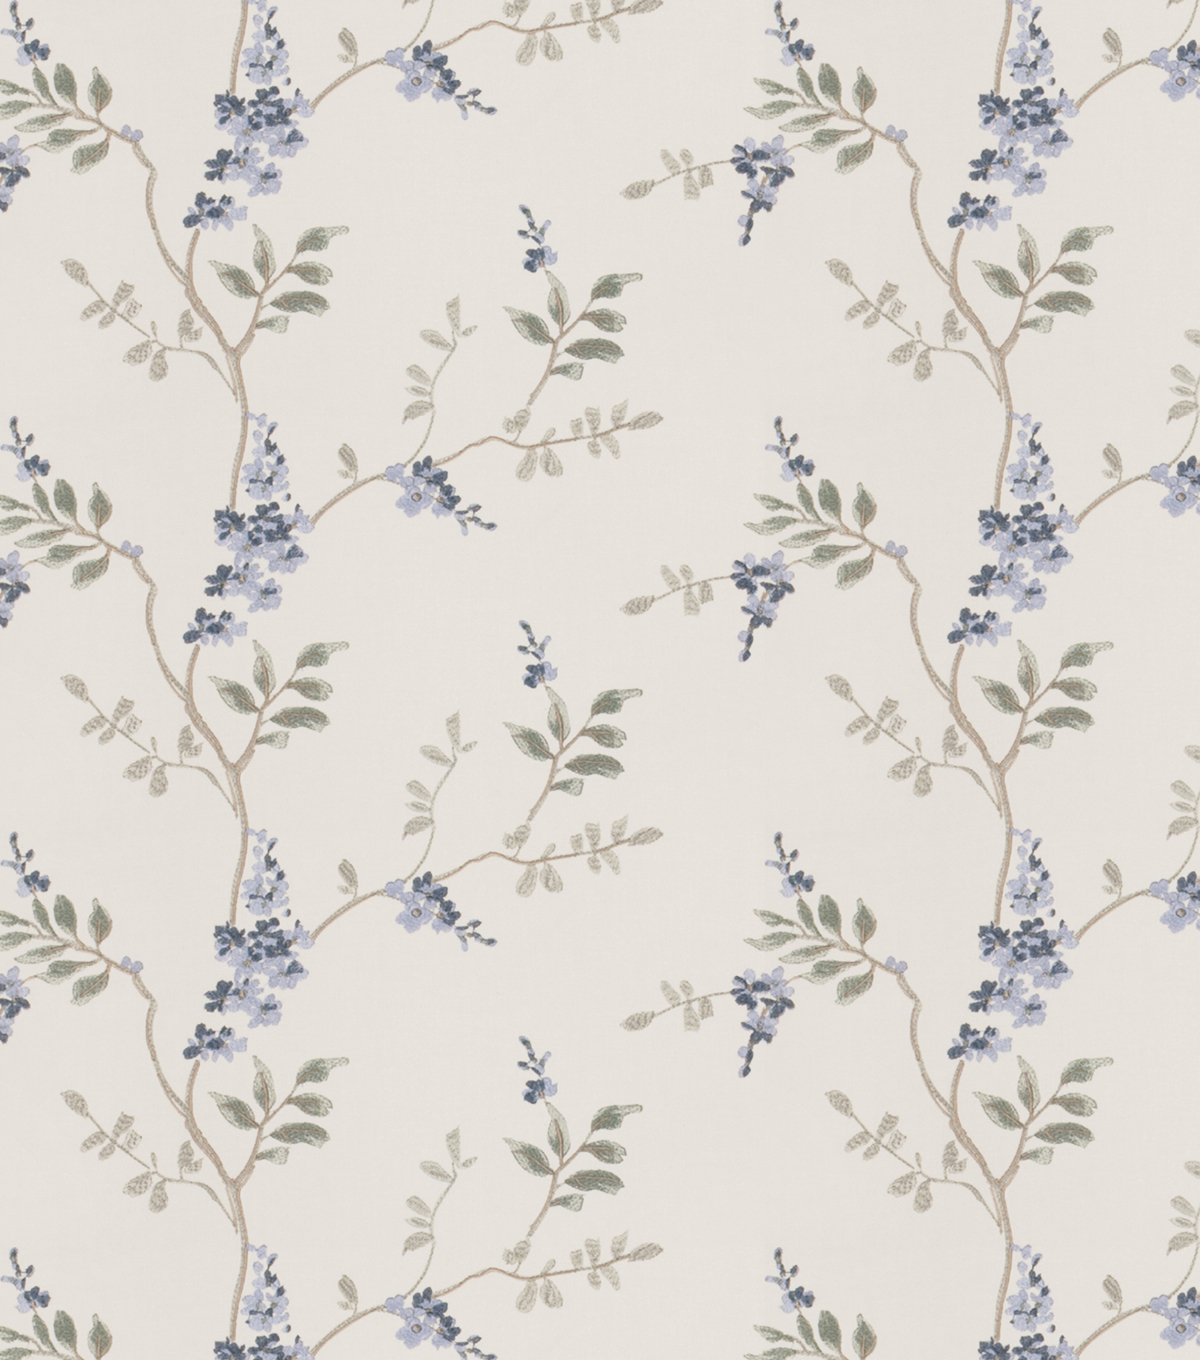 Eaton Square Print Fabric 51\u0022-Rosehips/Chambray